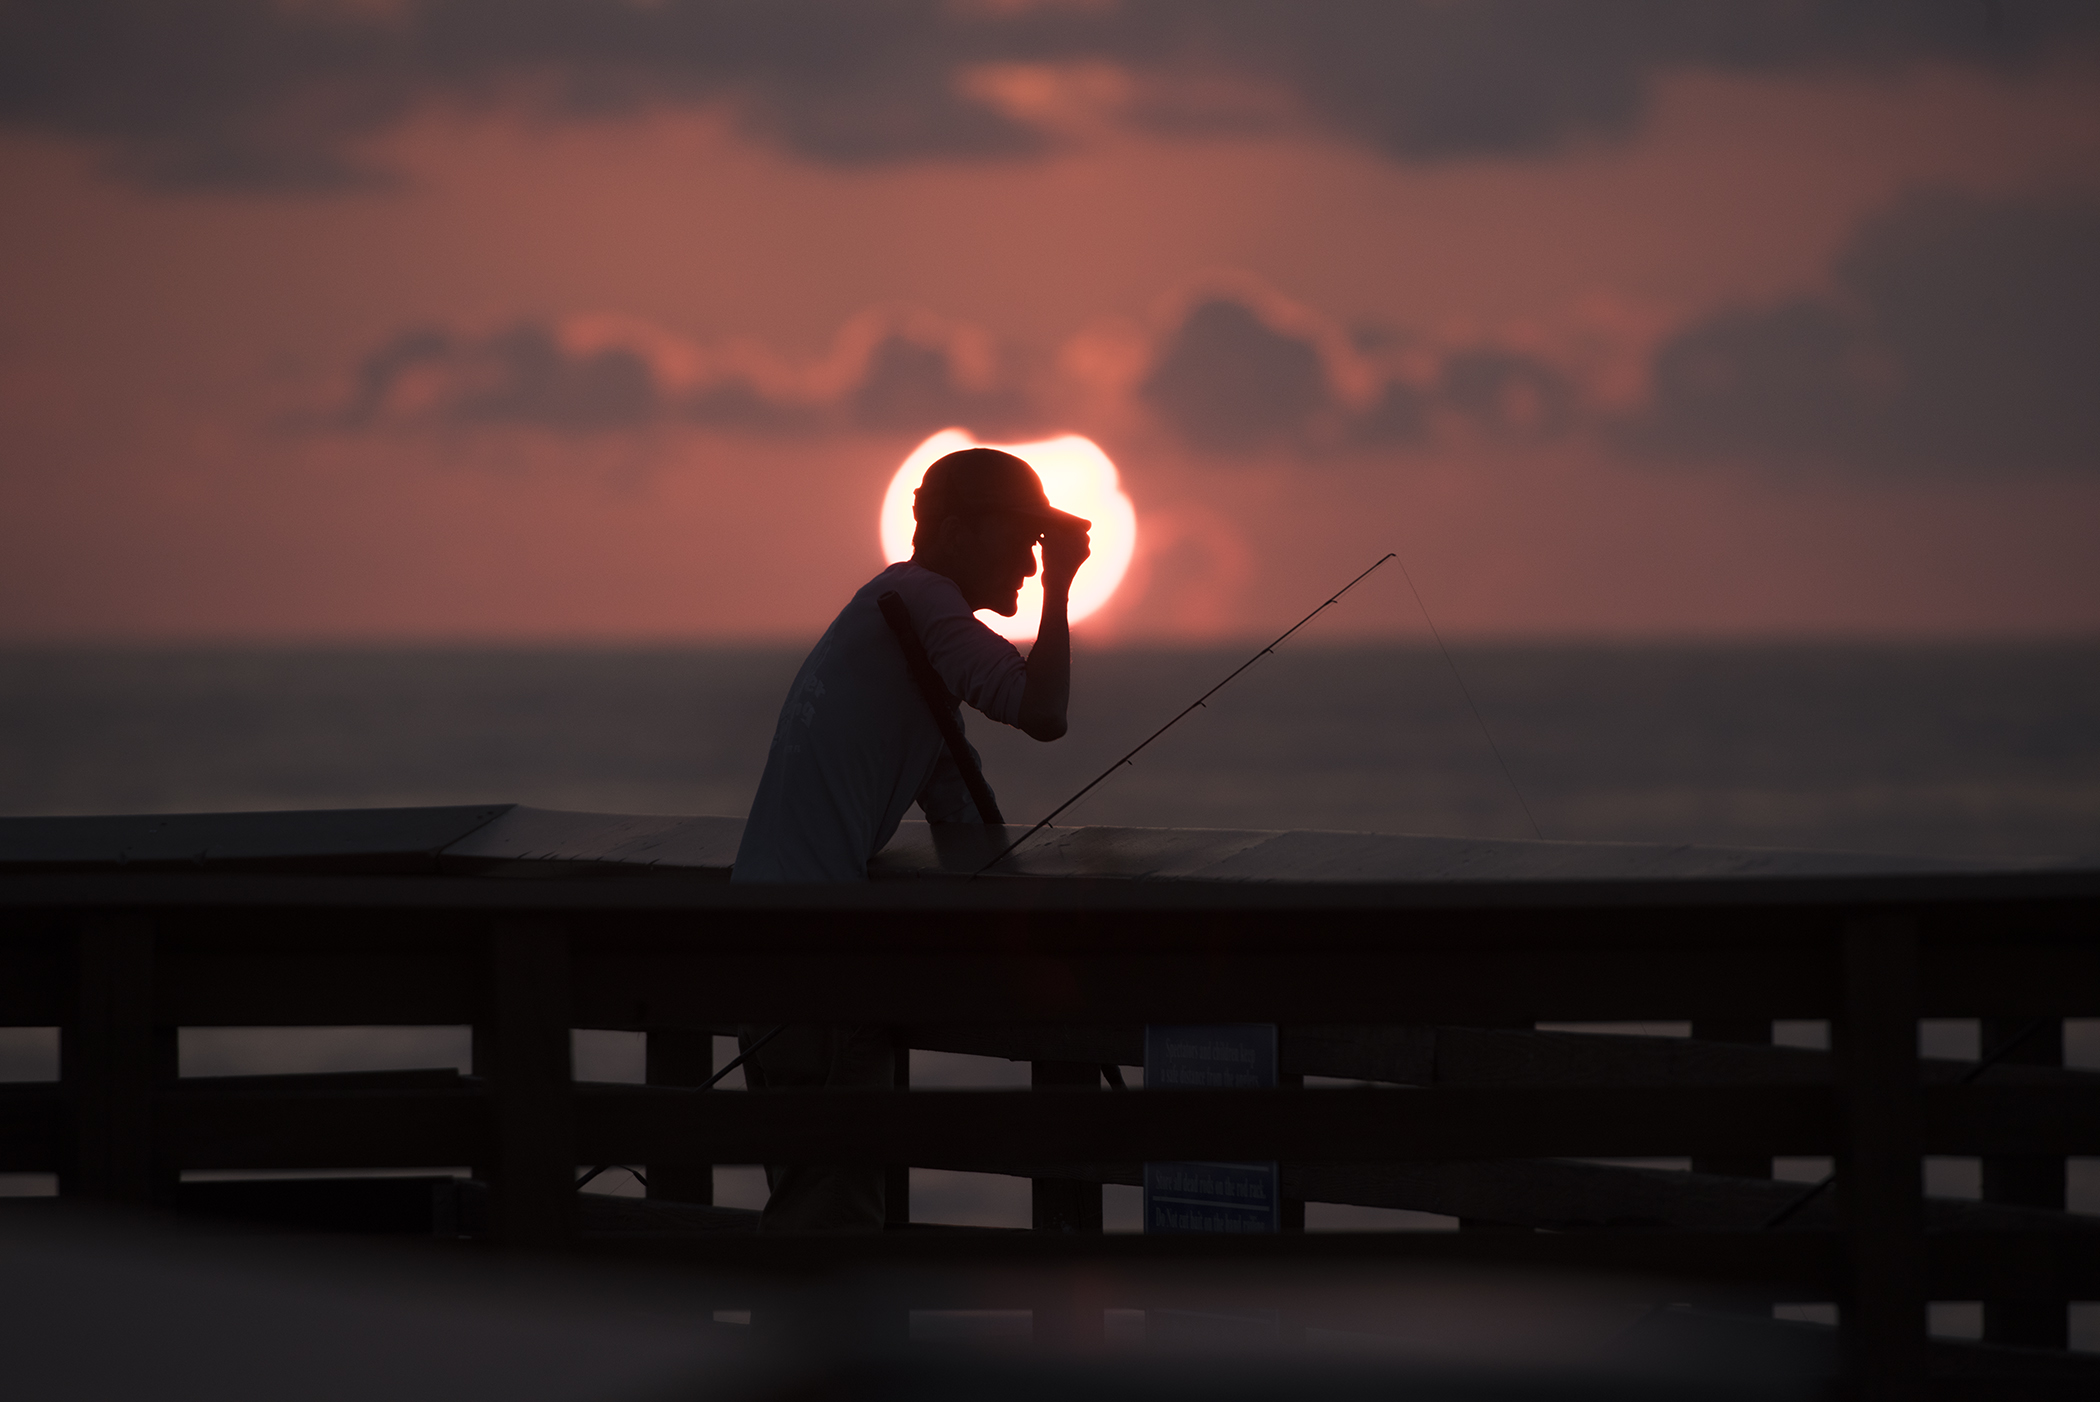 A man who asked not to be identified adjusts his cap while fishing at the Juno Beach Fishing Pier at sunrise Wednesday, September 20, 2017